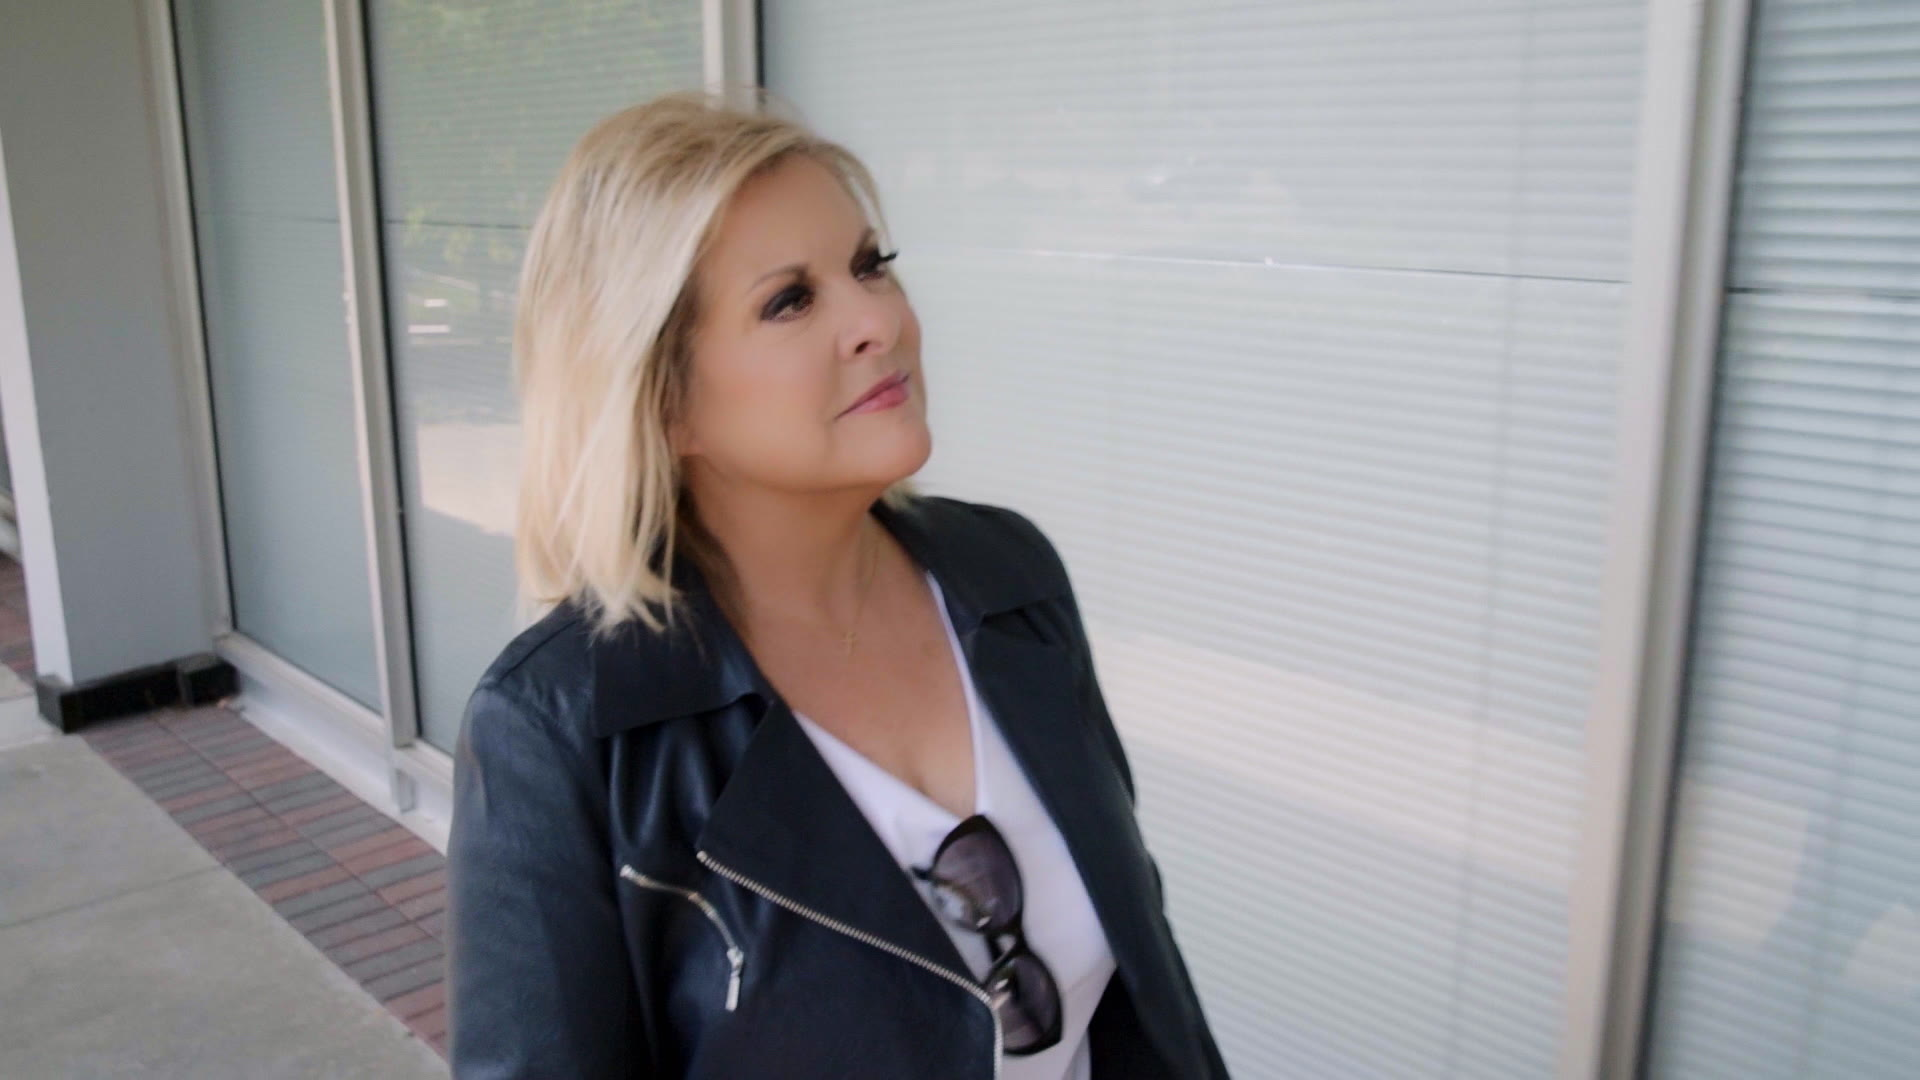 Injustice With Nancy Grace Sneak: An Ordinary Day At Work Turned Out To Be Michelle Mockbee's Last